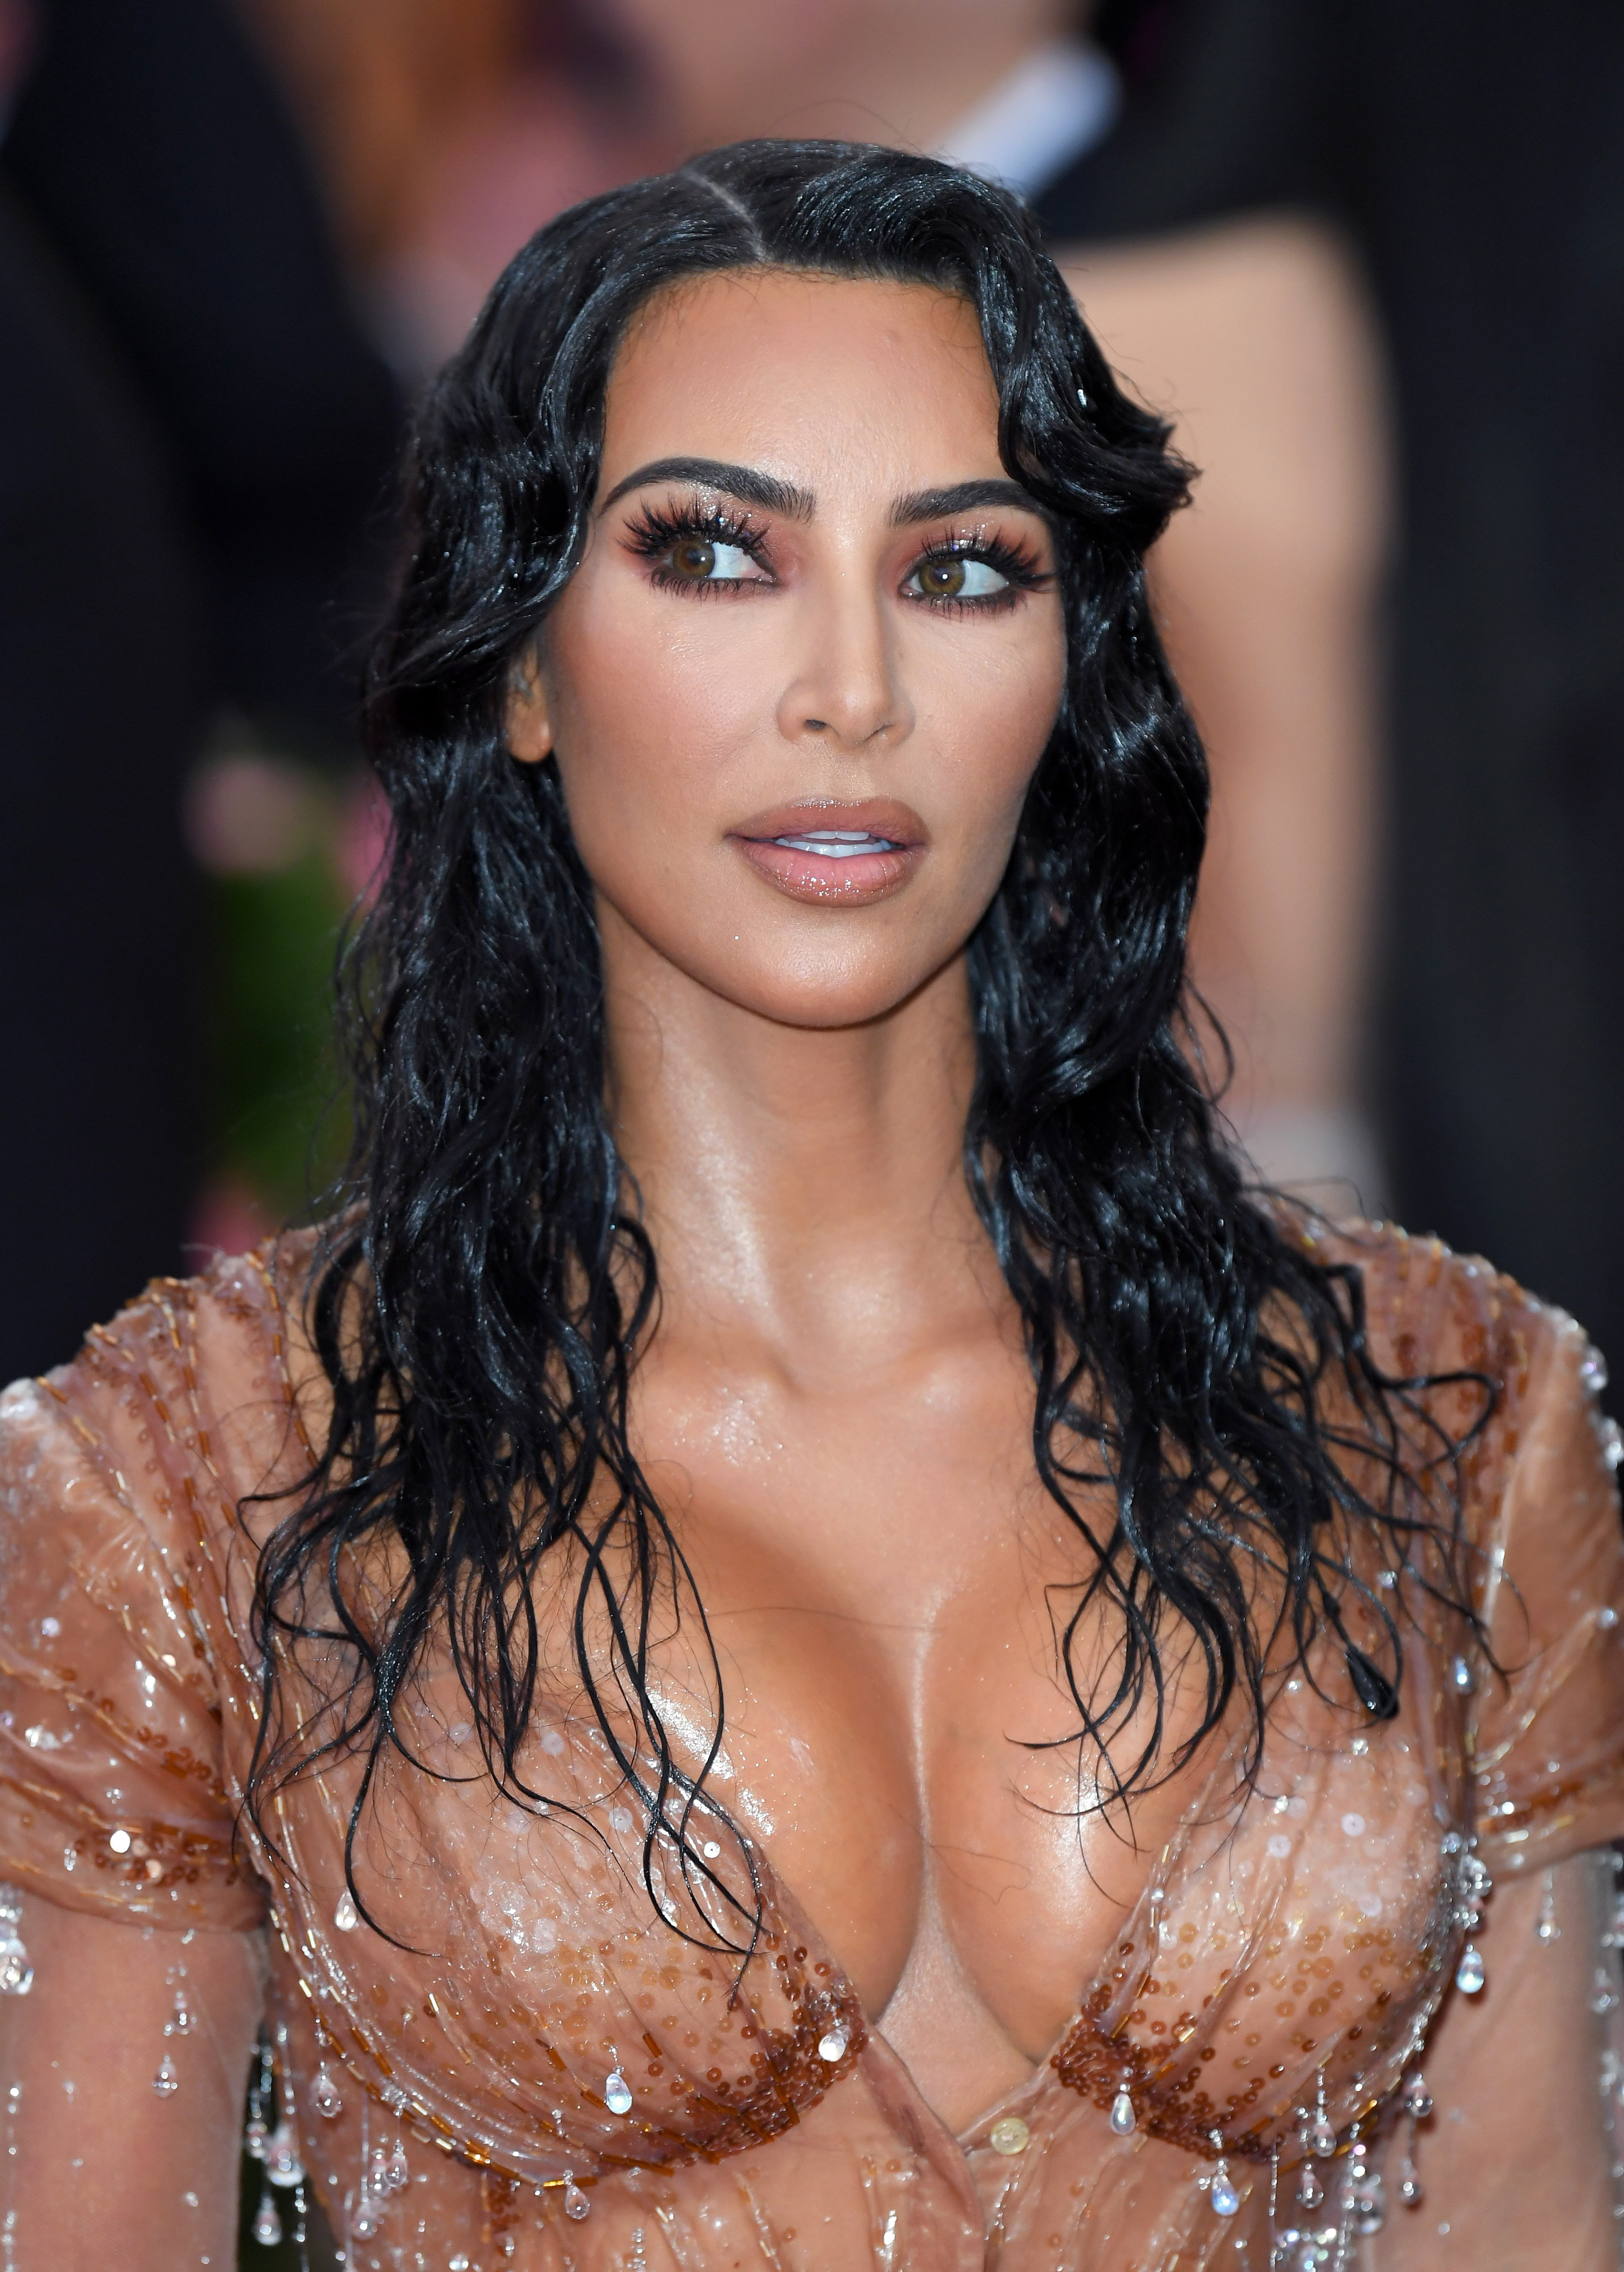 Kim Kardashian poses at the 2019 Met Gala at the Metropolitan Museum of Art on May 06, 2019 in New York City.   Source: Getty Images